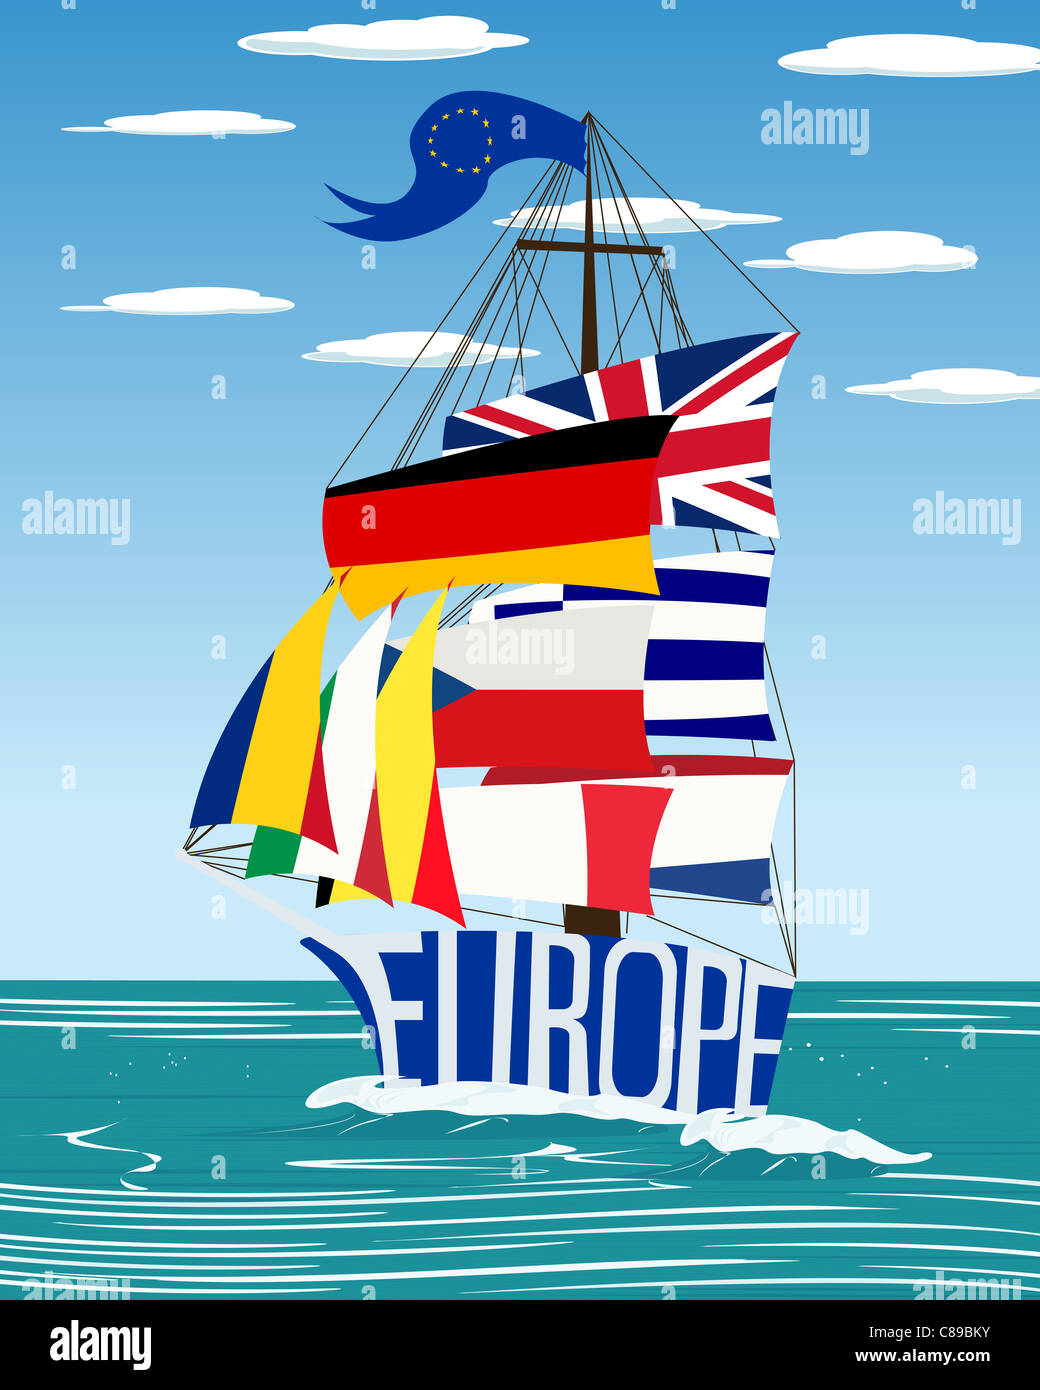 Conceptual European Union flag ship graphic - Stock Image